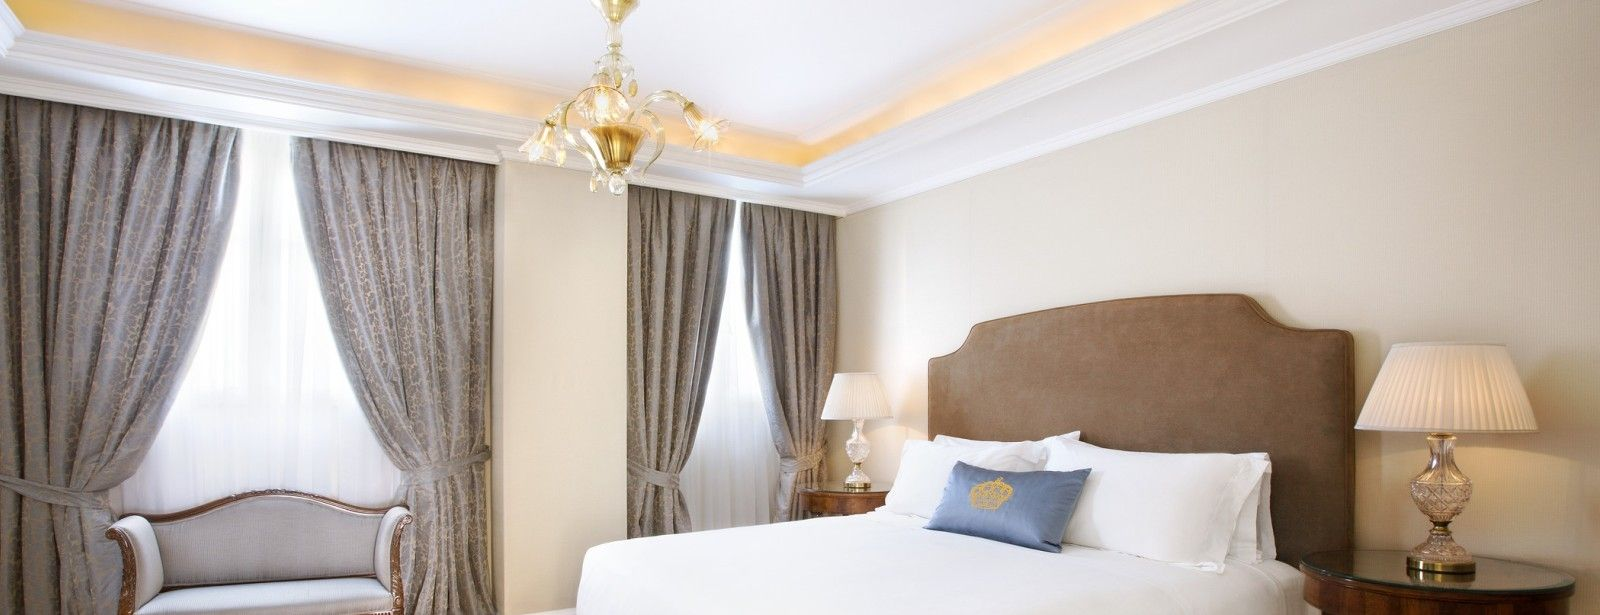 Penthouse Suite at King George, a Luxury Collection Hotel Athens Greece